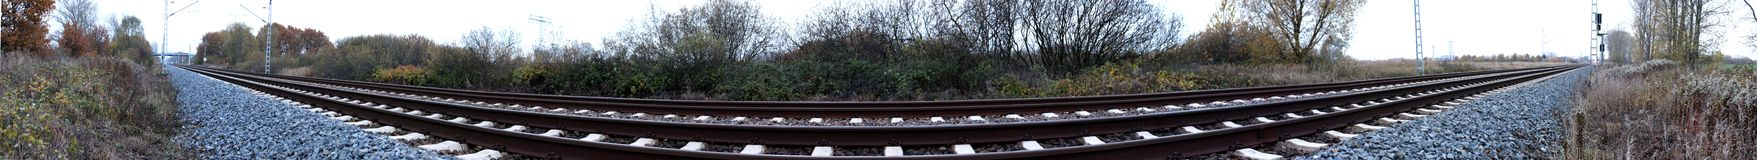 Railtrack Panorama Royalty Free Stock Image